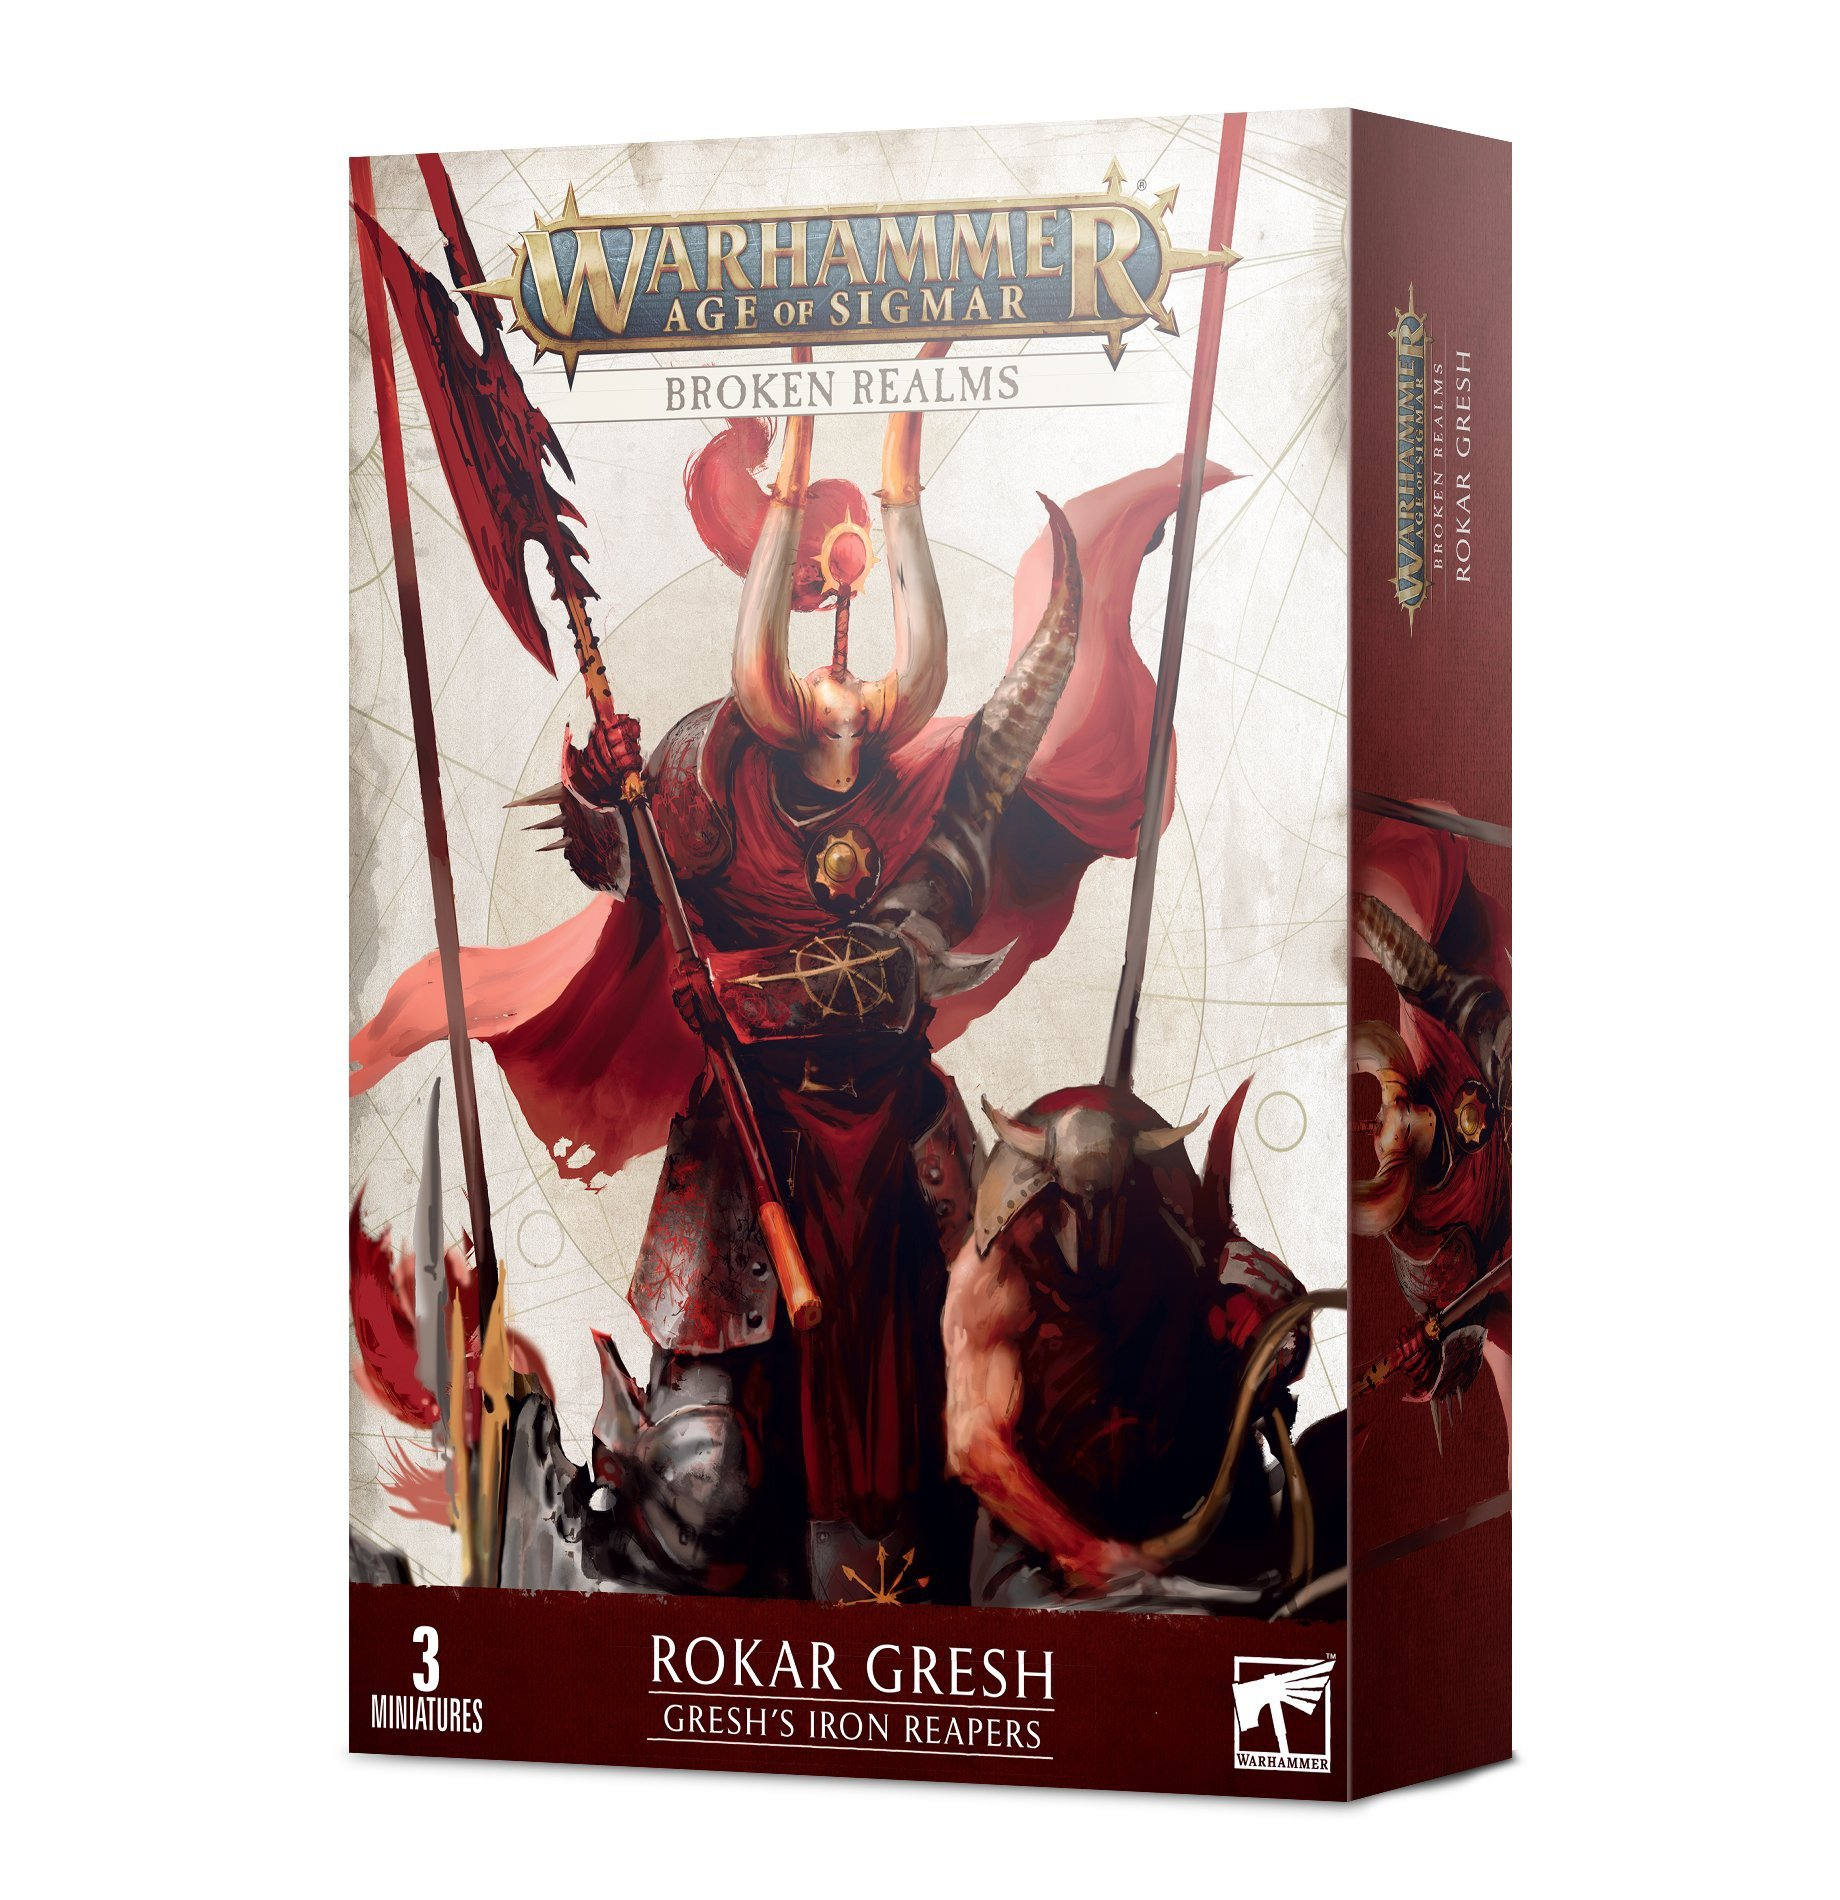 Warhammer Age Of Sigmar: Slaves to Darkness: Broken Realms - Greshs Iron Reapers